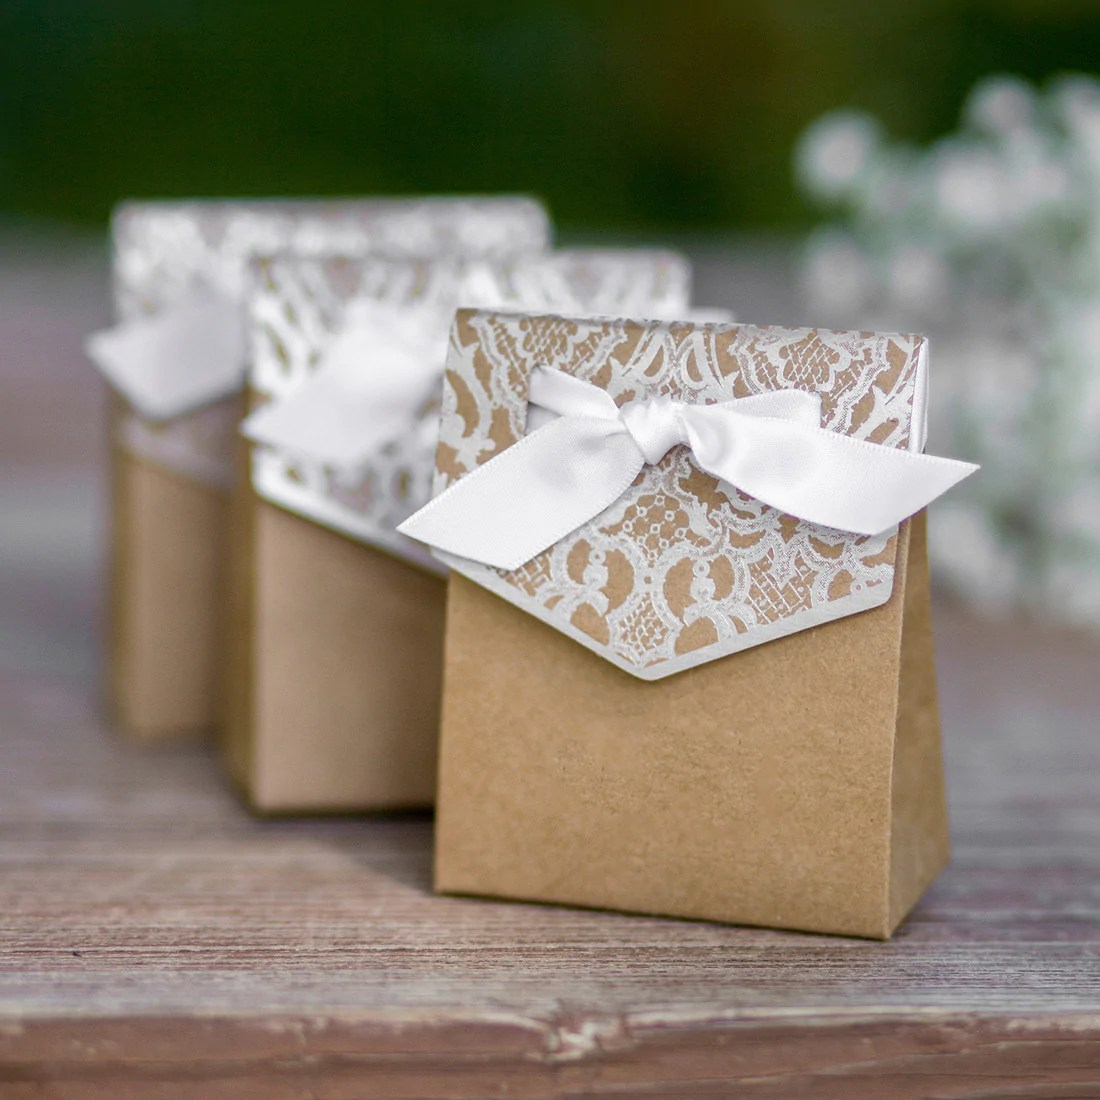 Vintage Tent Favor Boxes     Candy Cake Weddings Vintage Tent Favor Boxes      Vintage Tent Favor Boxes